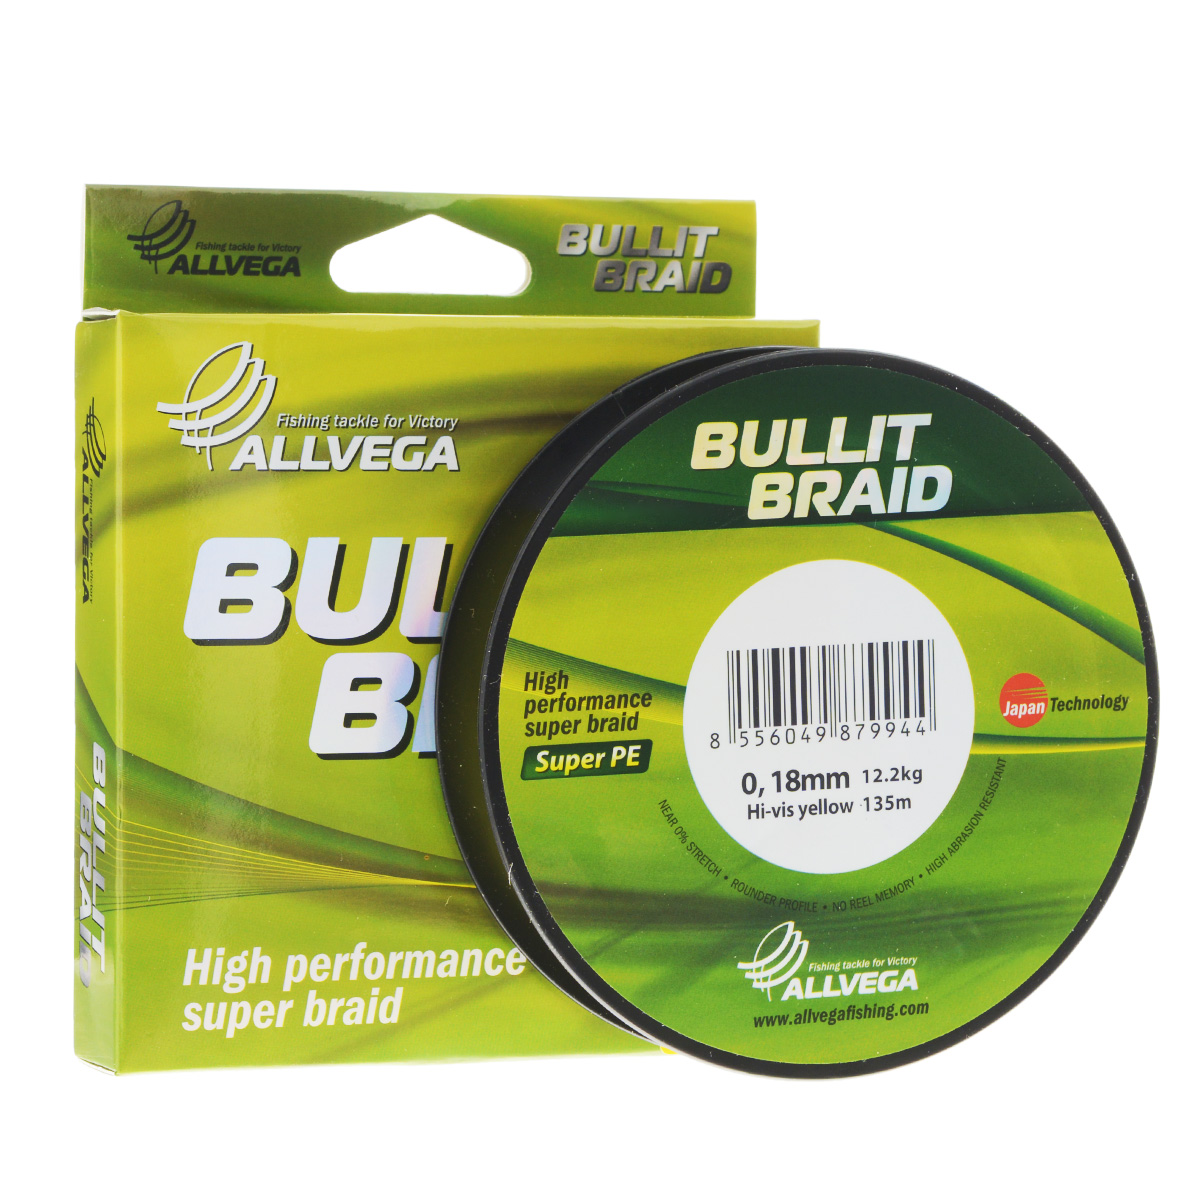 Леска плетеная Allvega Bullit Braid, цвет: ярко-желтый, 135 м, 0,18 мм, 12,2 кг